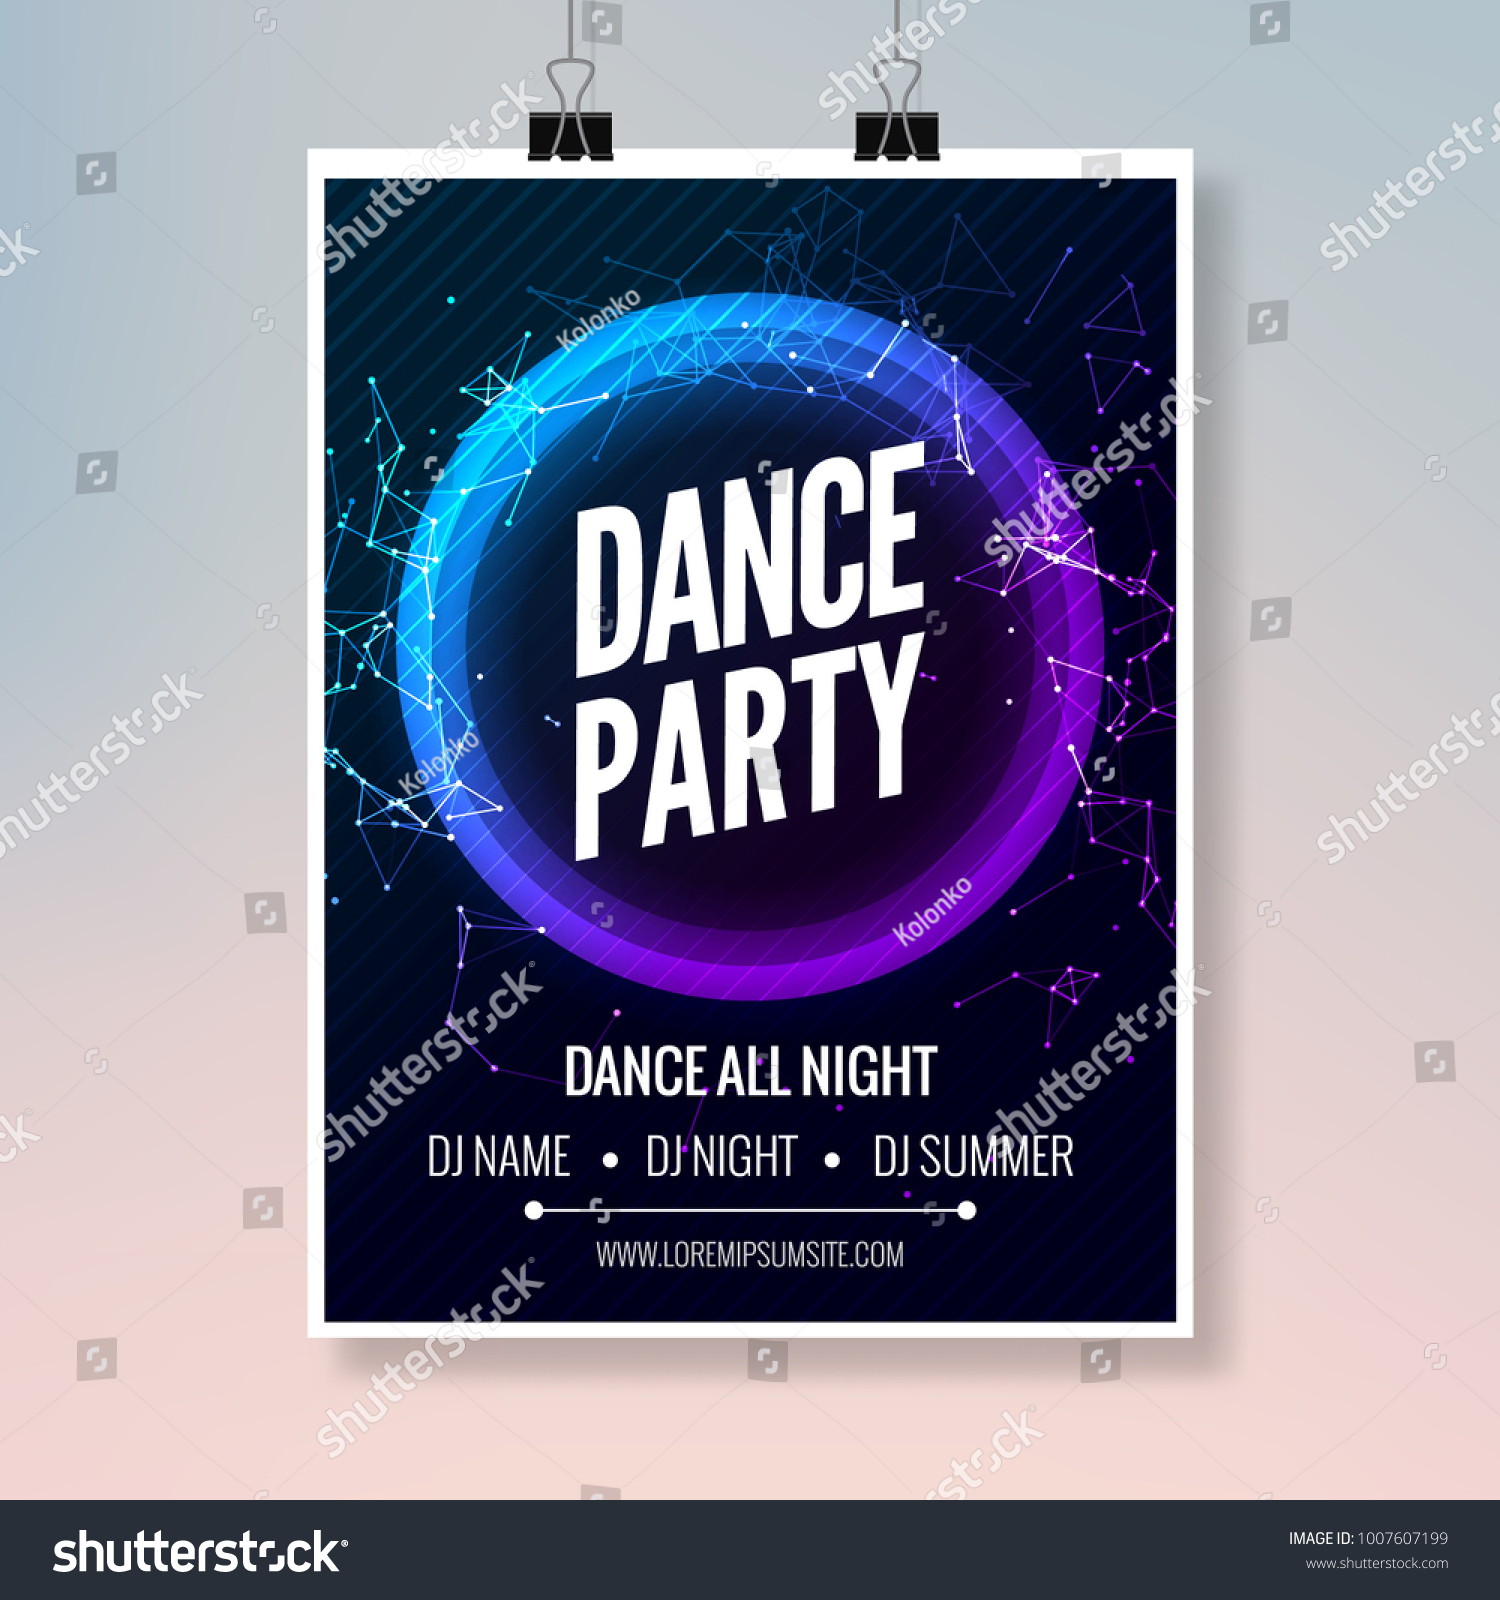 modern club music party template dance party flyer brochure night